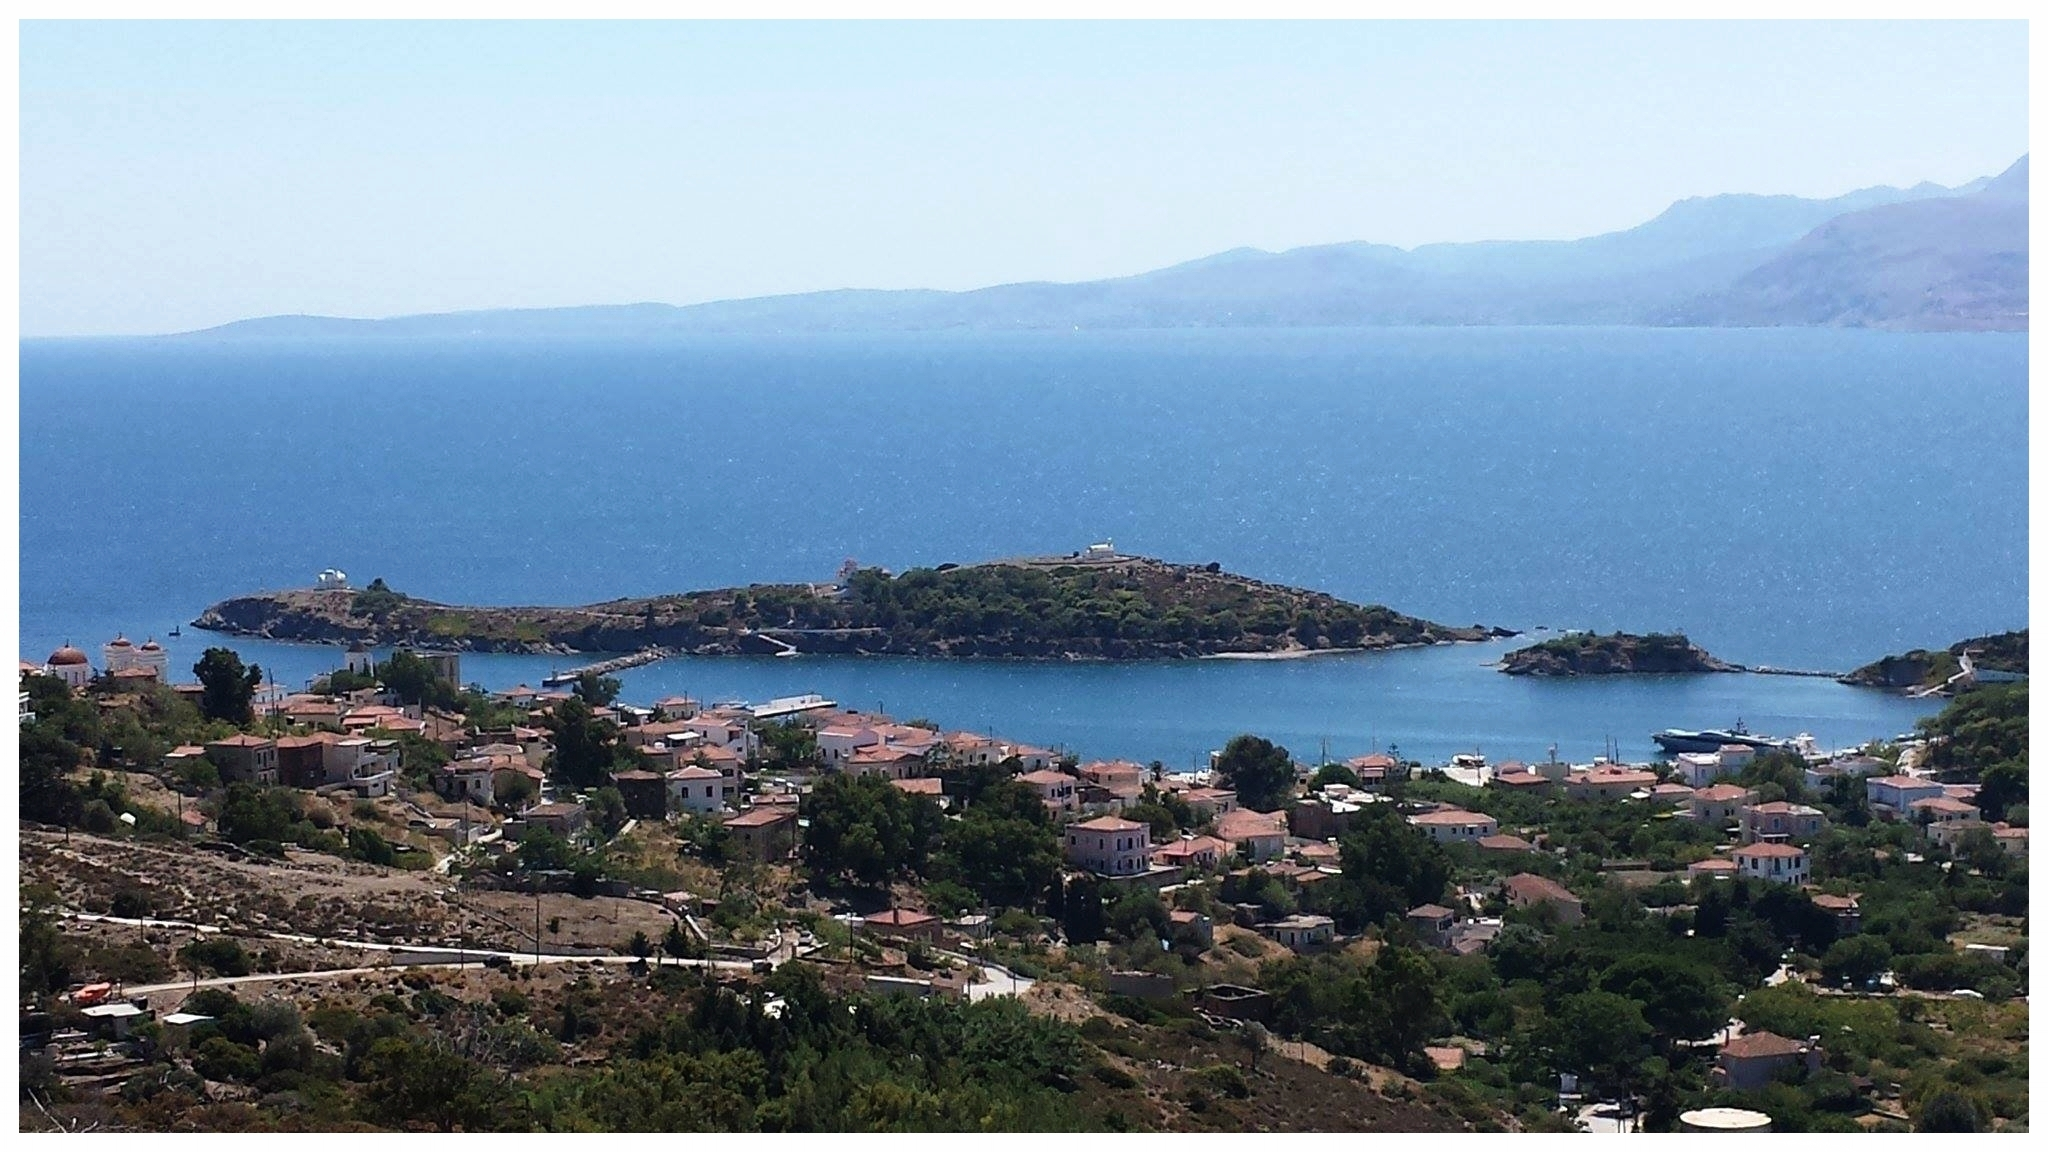 View of village, harbour and Chios from road above village